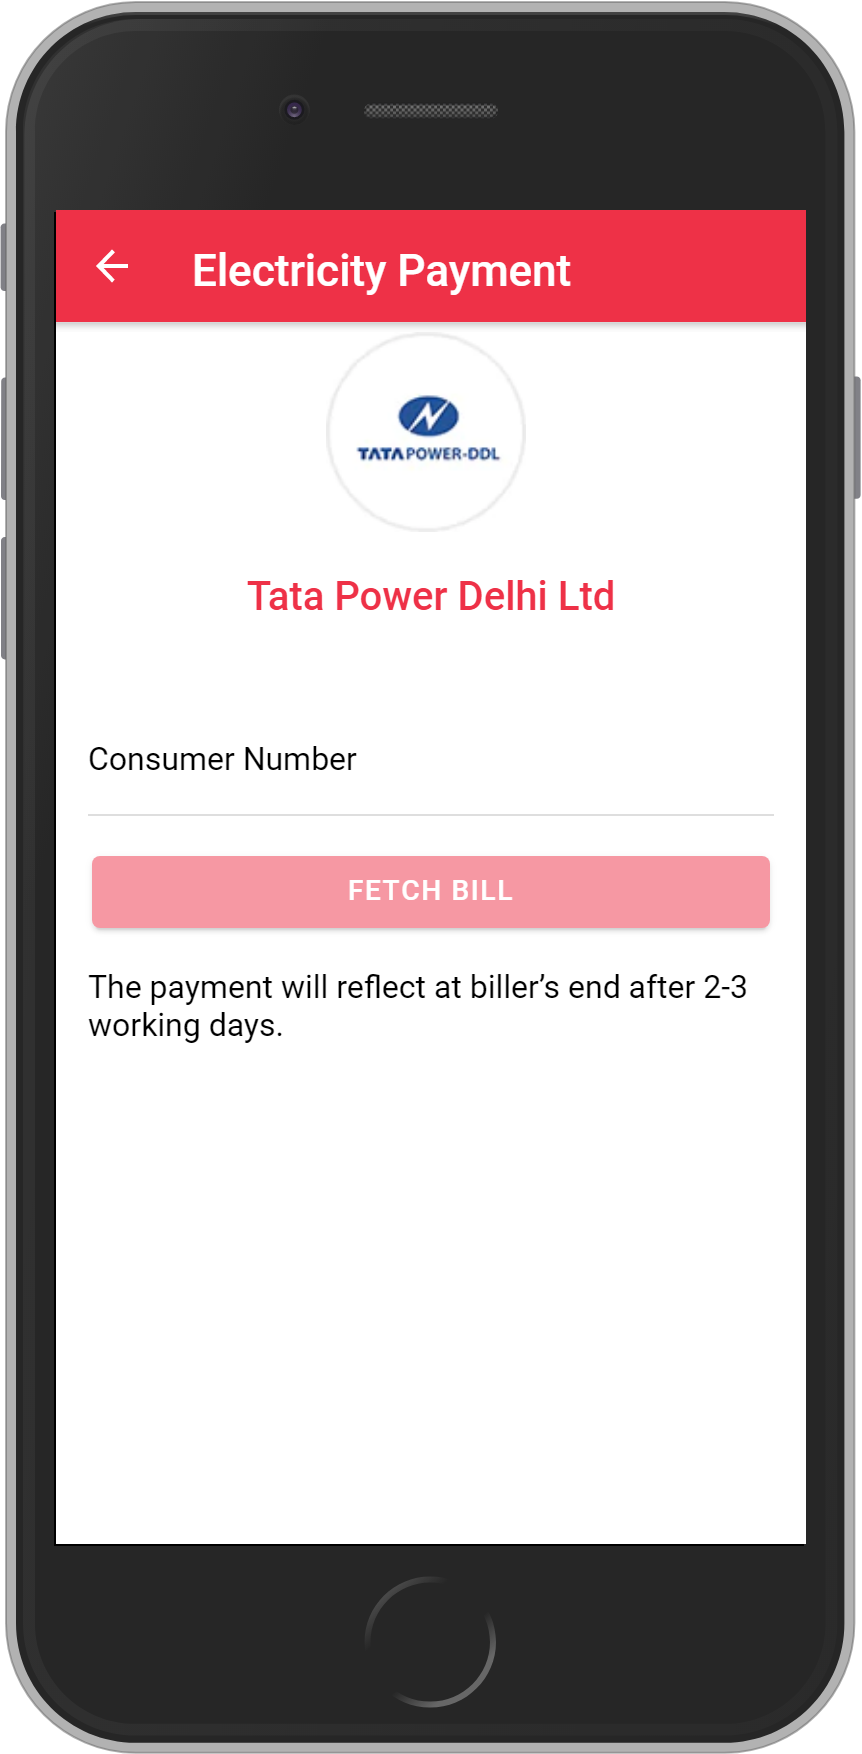 Get UNLIMITED <b>0.1%</b> CASHBACK on Tata Power Delhi Limited – Delhi Bill Payment.